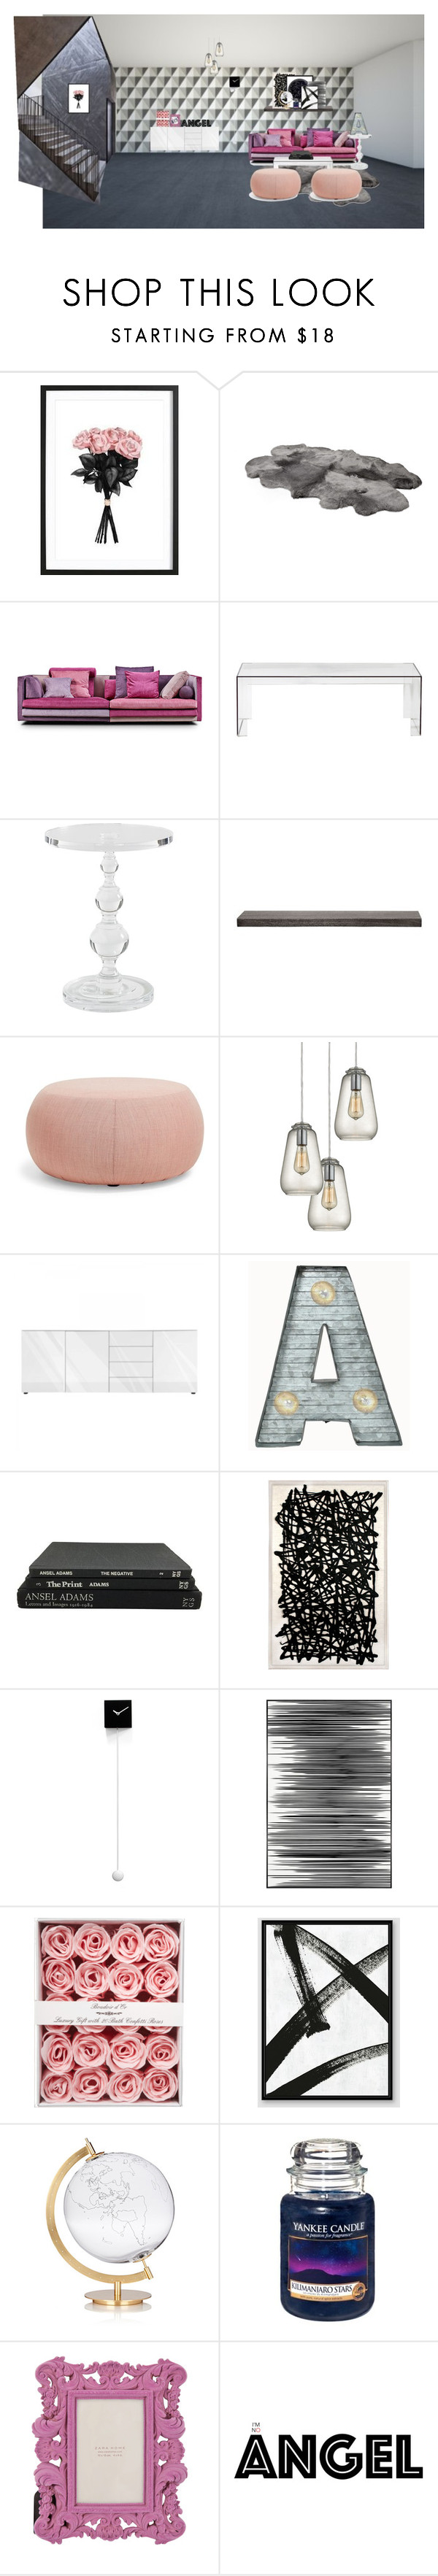 """Sem título #482"" by paradapermitida on Polyvore featuring interior, interiors, interior design, casa, home decor, interior decorating, Kartell, WALL, Arper e Dot & Bo"